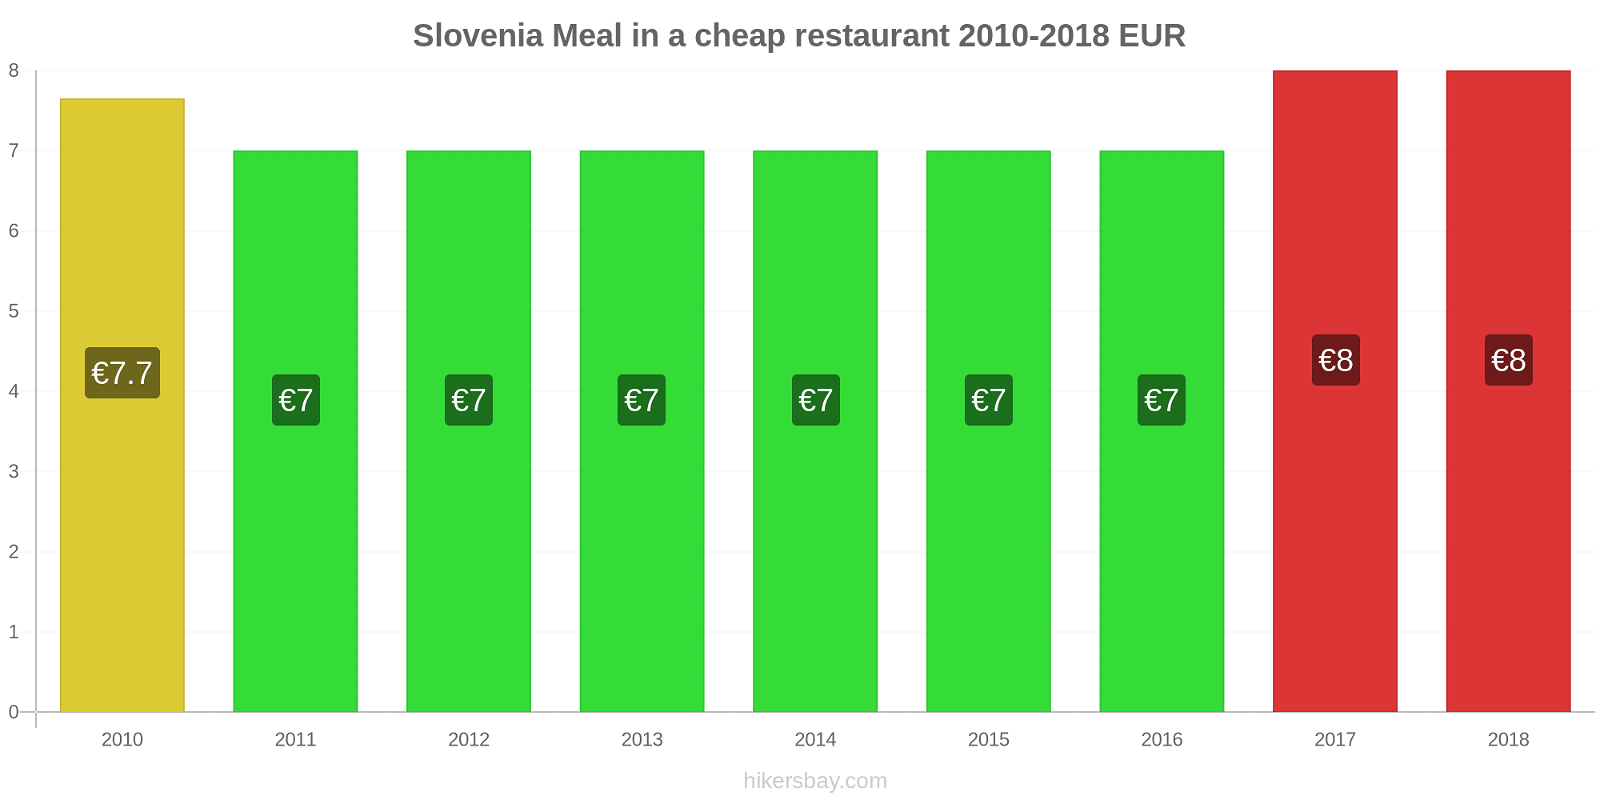 Slovenia price changes Meal in a cheap restaurant hikersbay.com